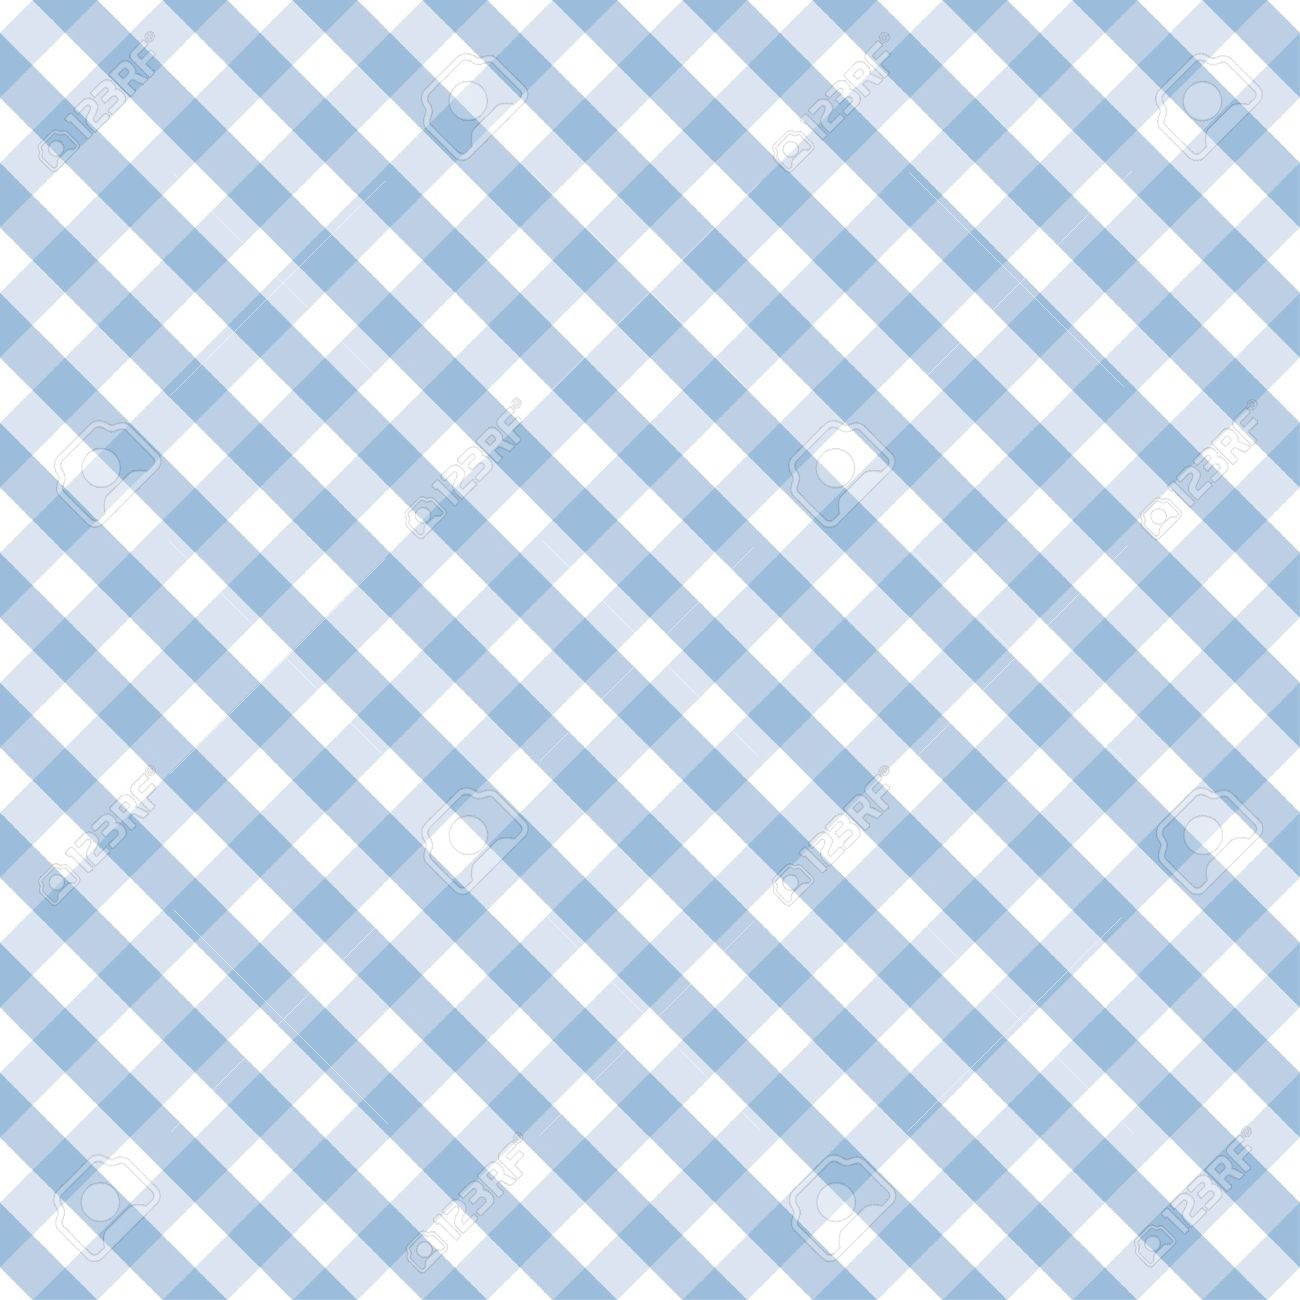 Seamless Cross Weave Gingham pattern in pastel blue and white includes pattern swatch that will seamlessly fill any shape Stock Vector - 14119477